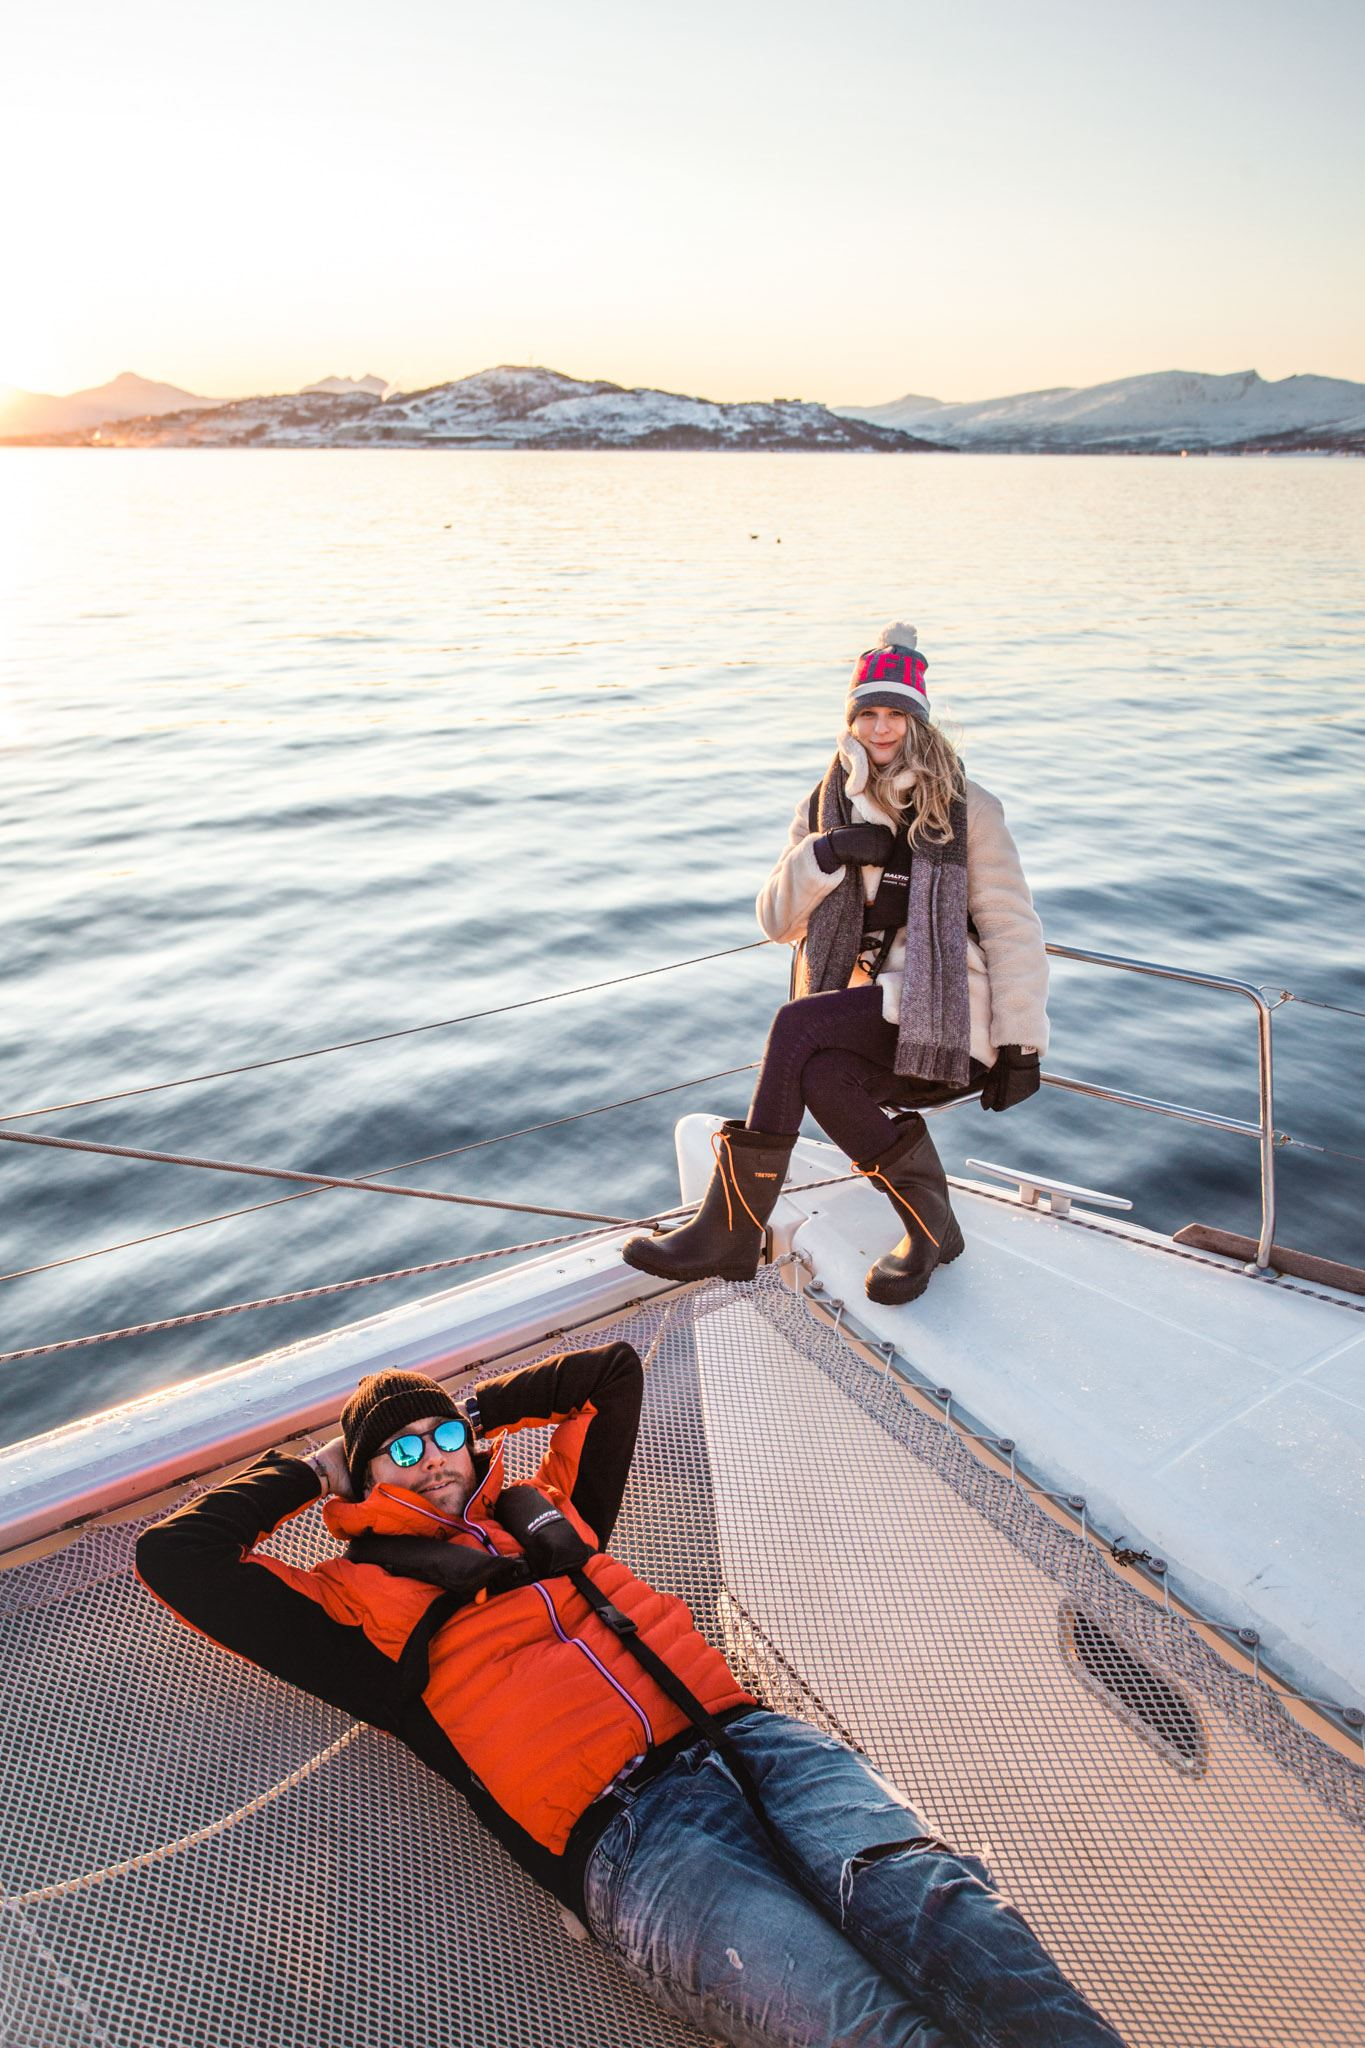 Arctic Sail Safari - Pukka Travels